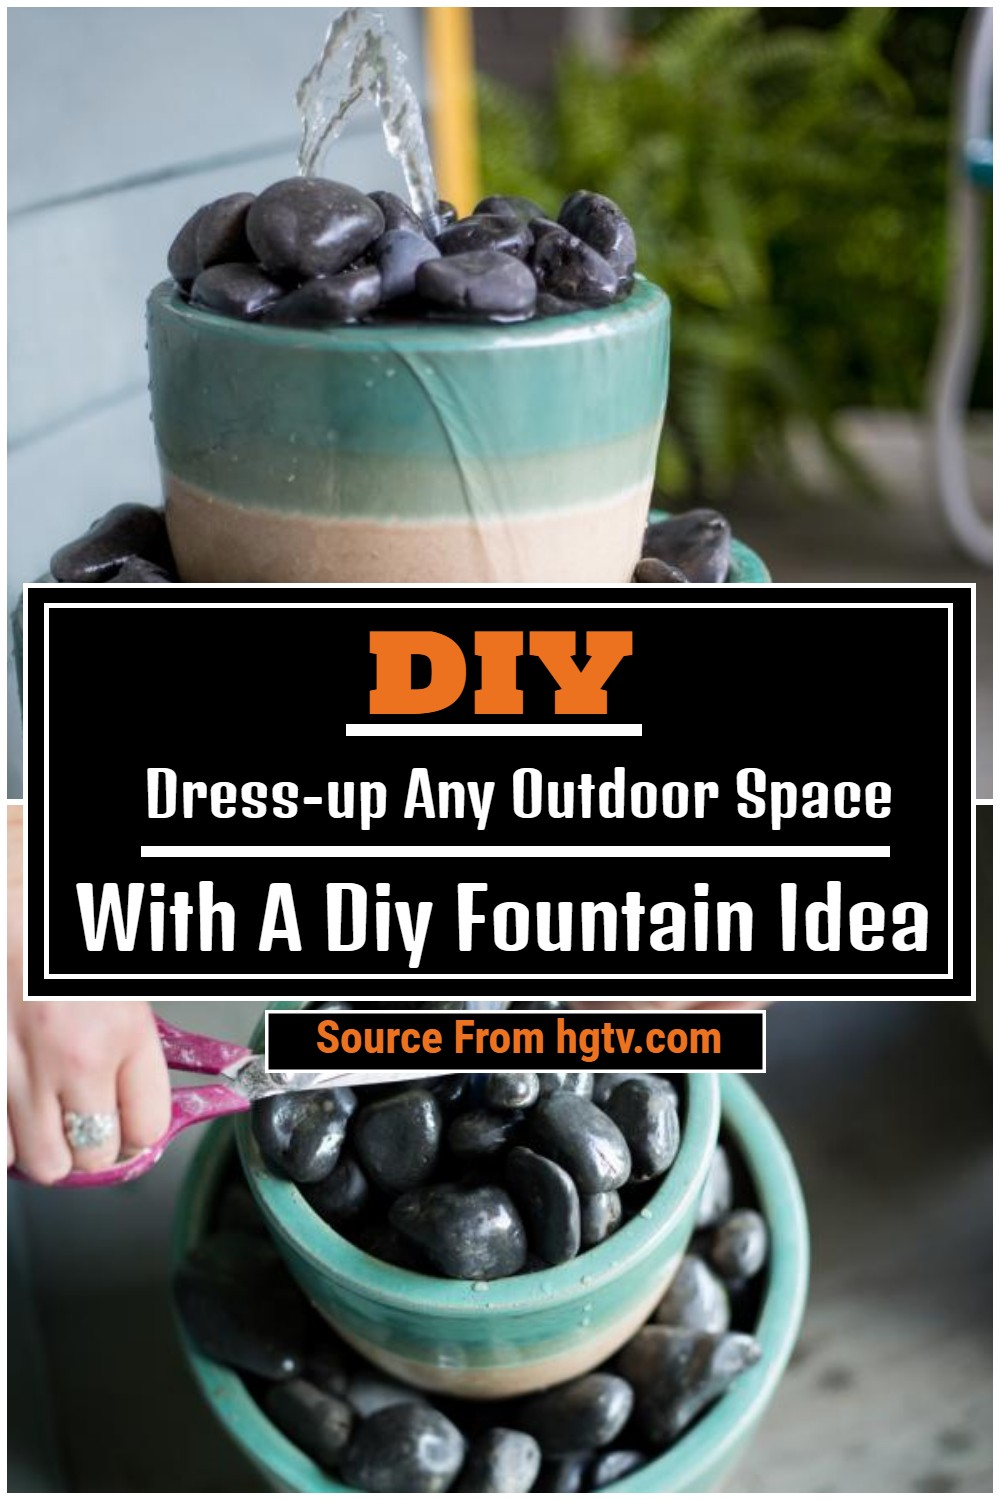 Dress-up Any Outdoor Space With A Diy Fountain Idea